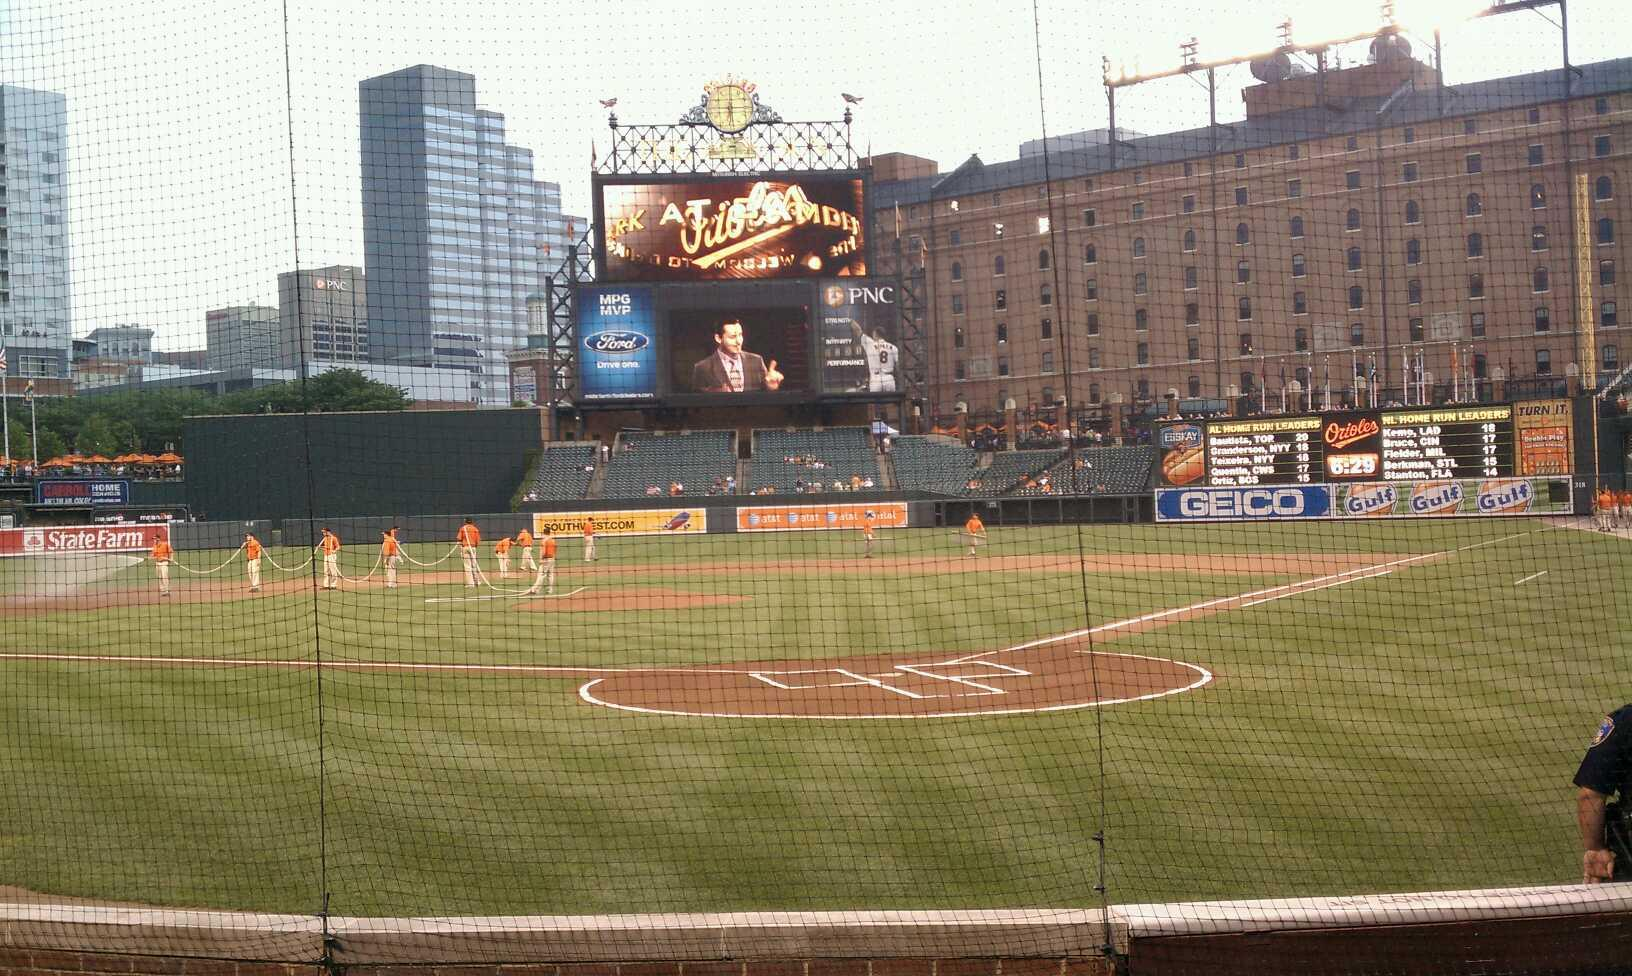 Oriole Park at Camden Yards Section 40 Row 7 Seat 4